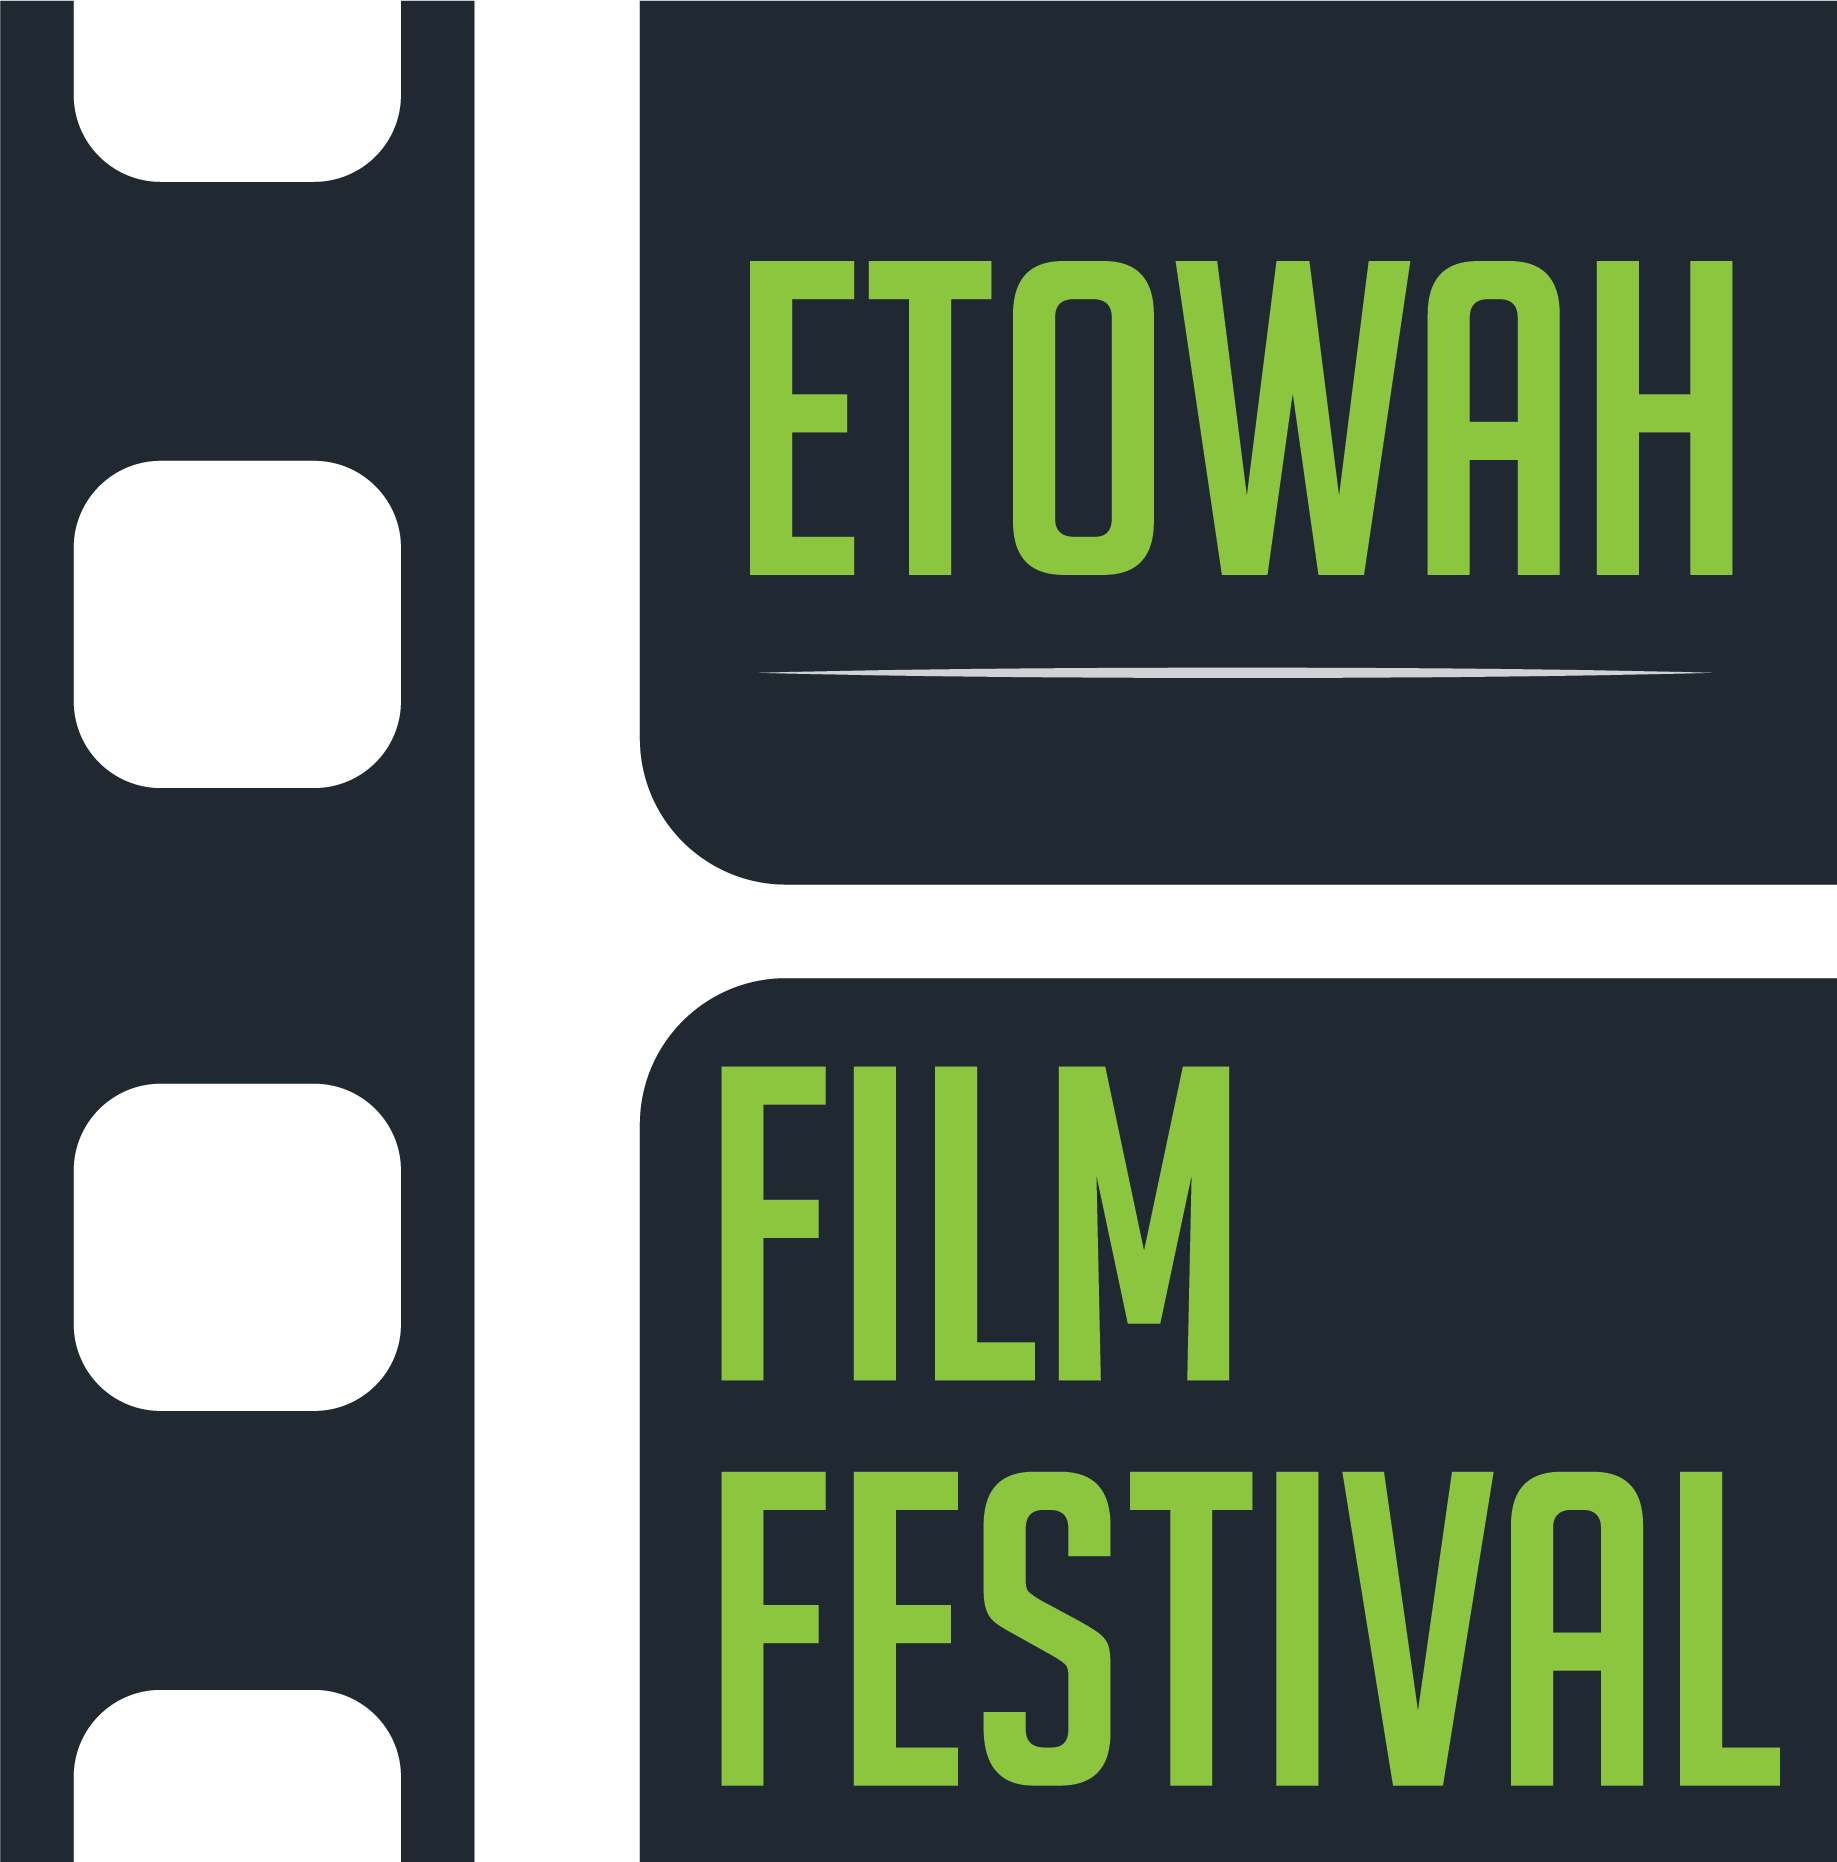 Click the logo to visit the Etowah Film Festival website for more information -